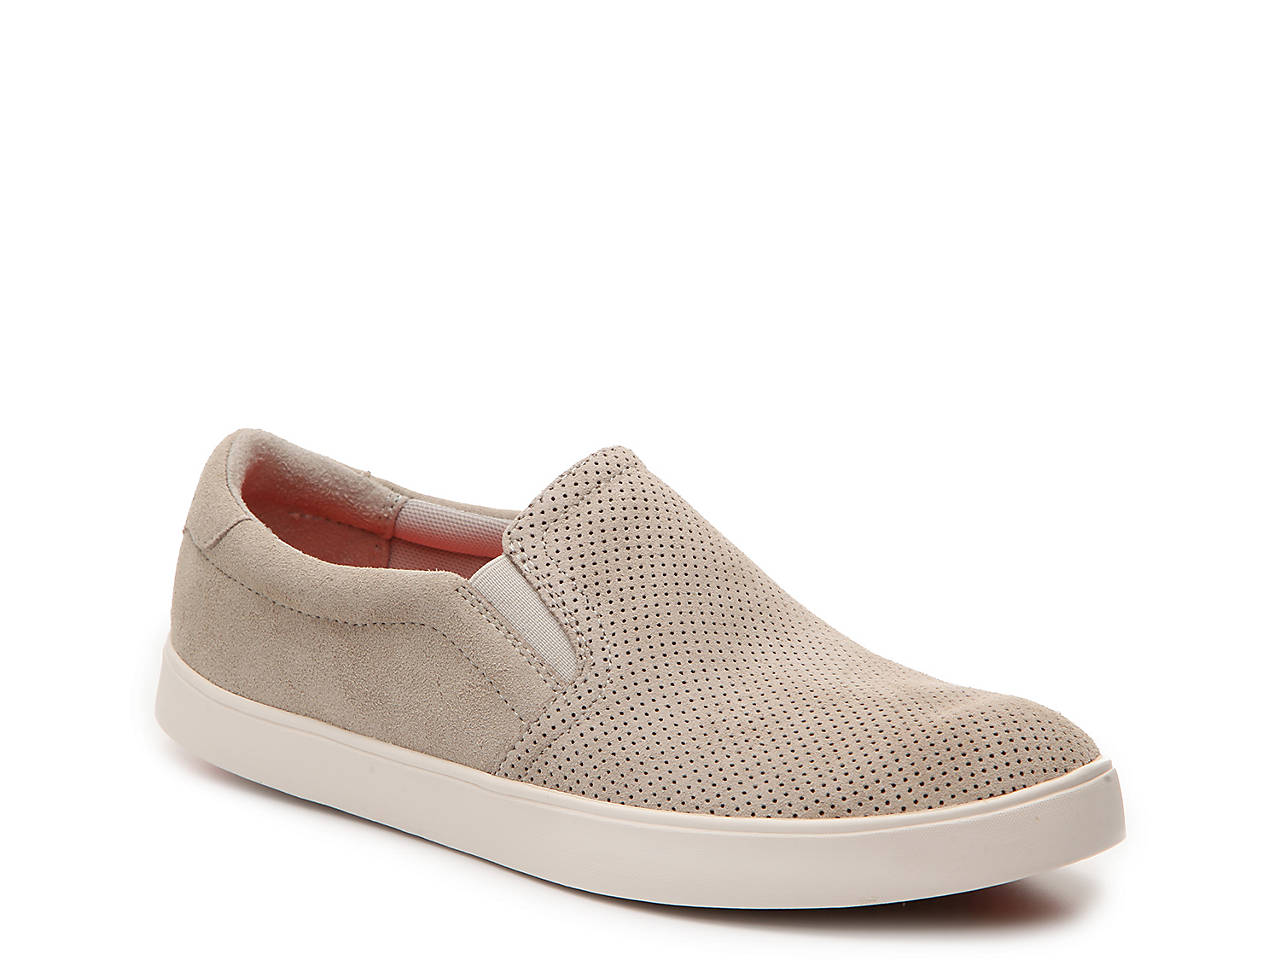 a2b6b1a33127b Dr. Scholl's Madison Slip-On Sneaker Women's Shoes | DSW